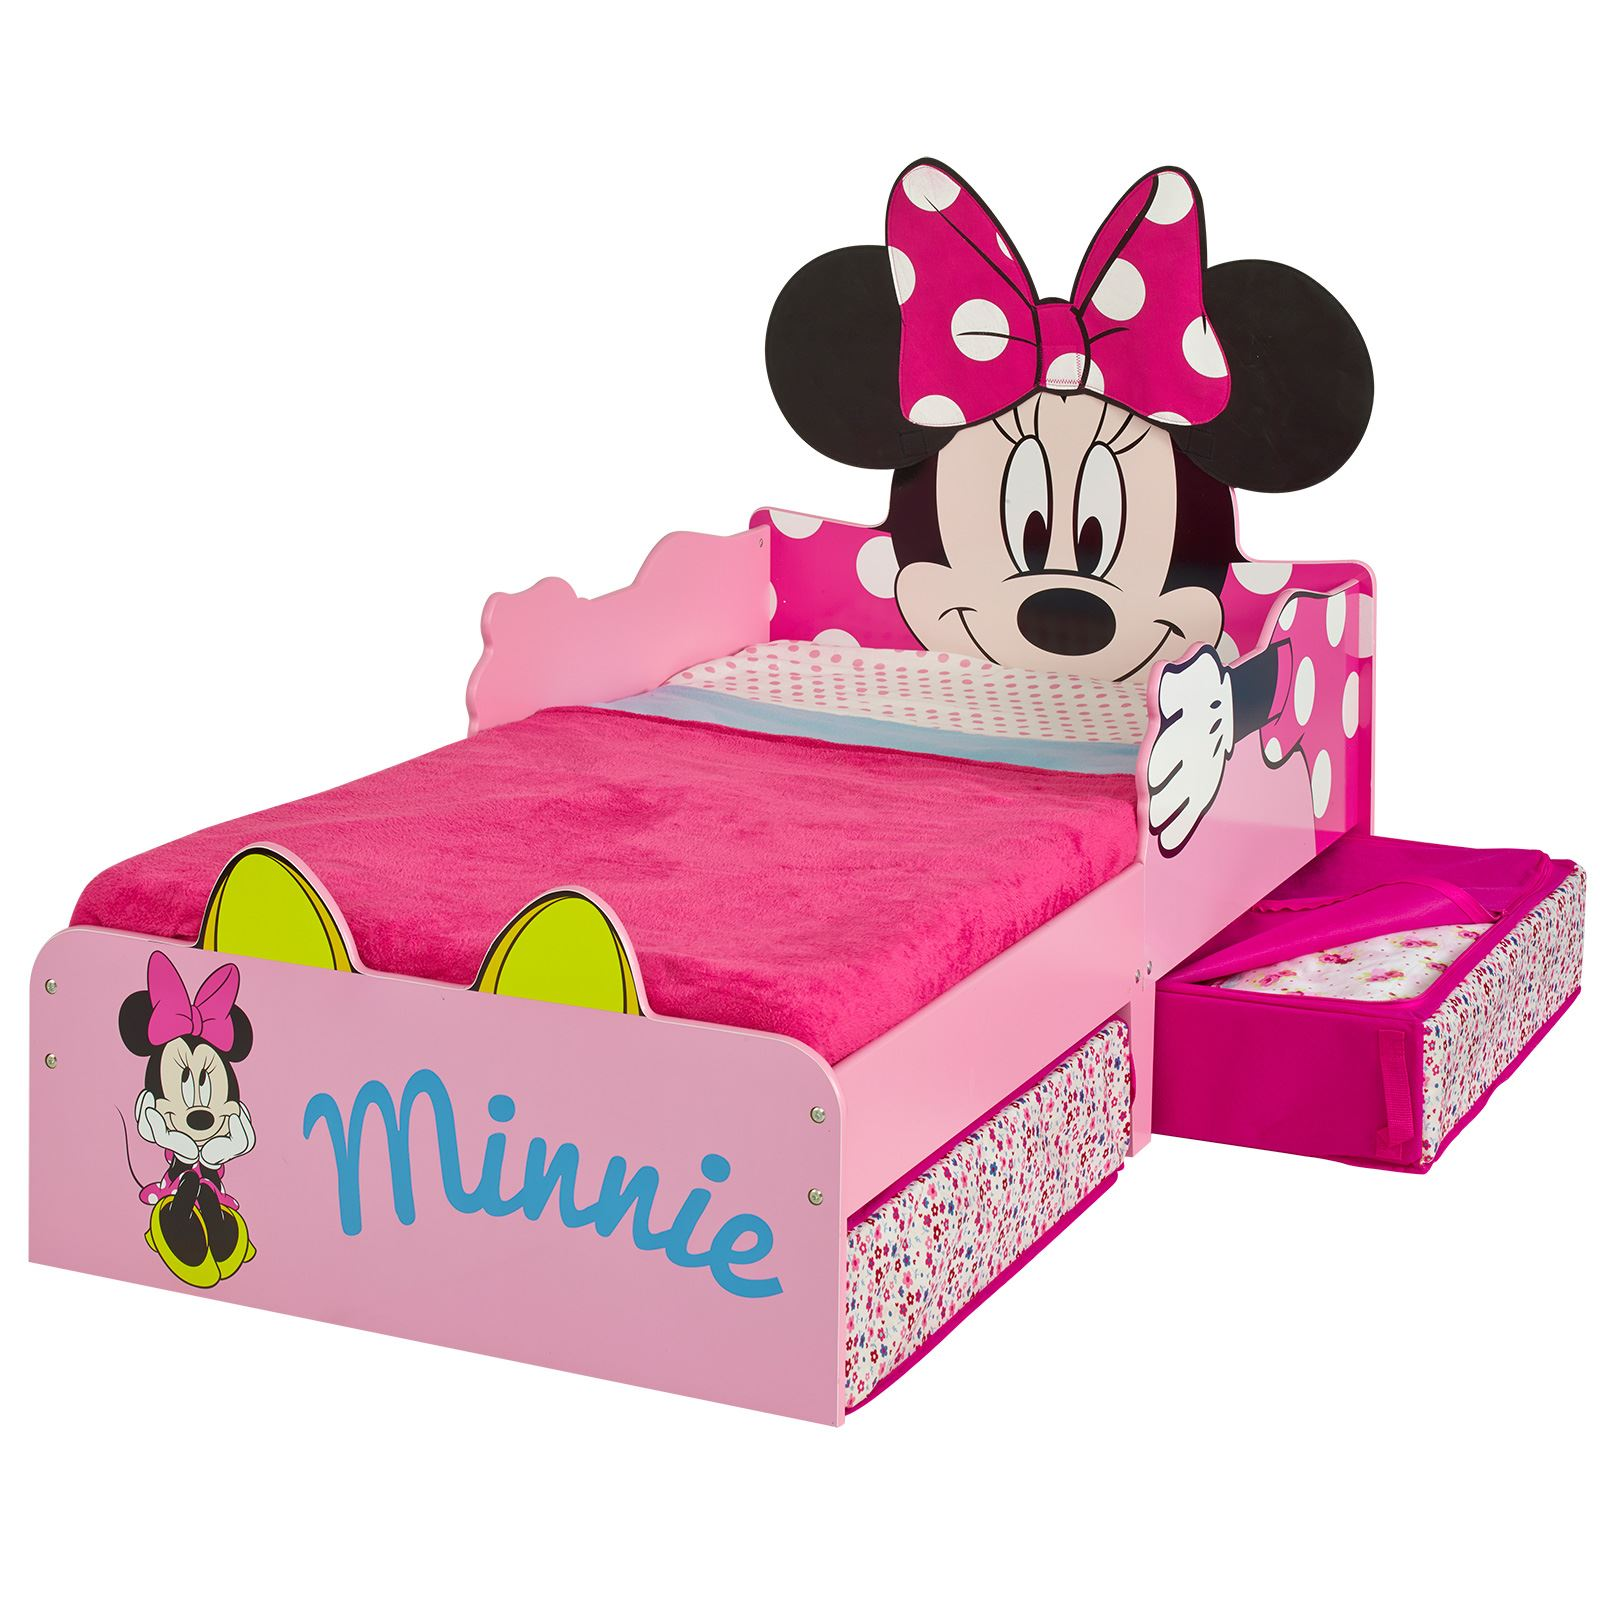 MINNIE MOUSE MDF TODDLER BED WITH STORAGE MATTRESS NEW